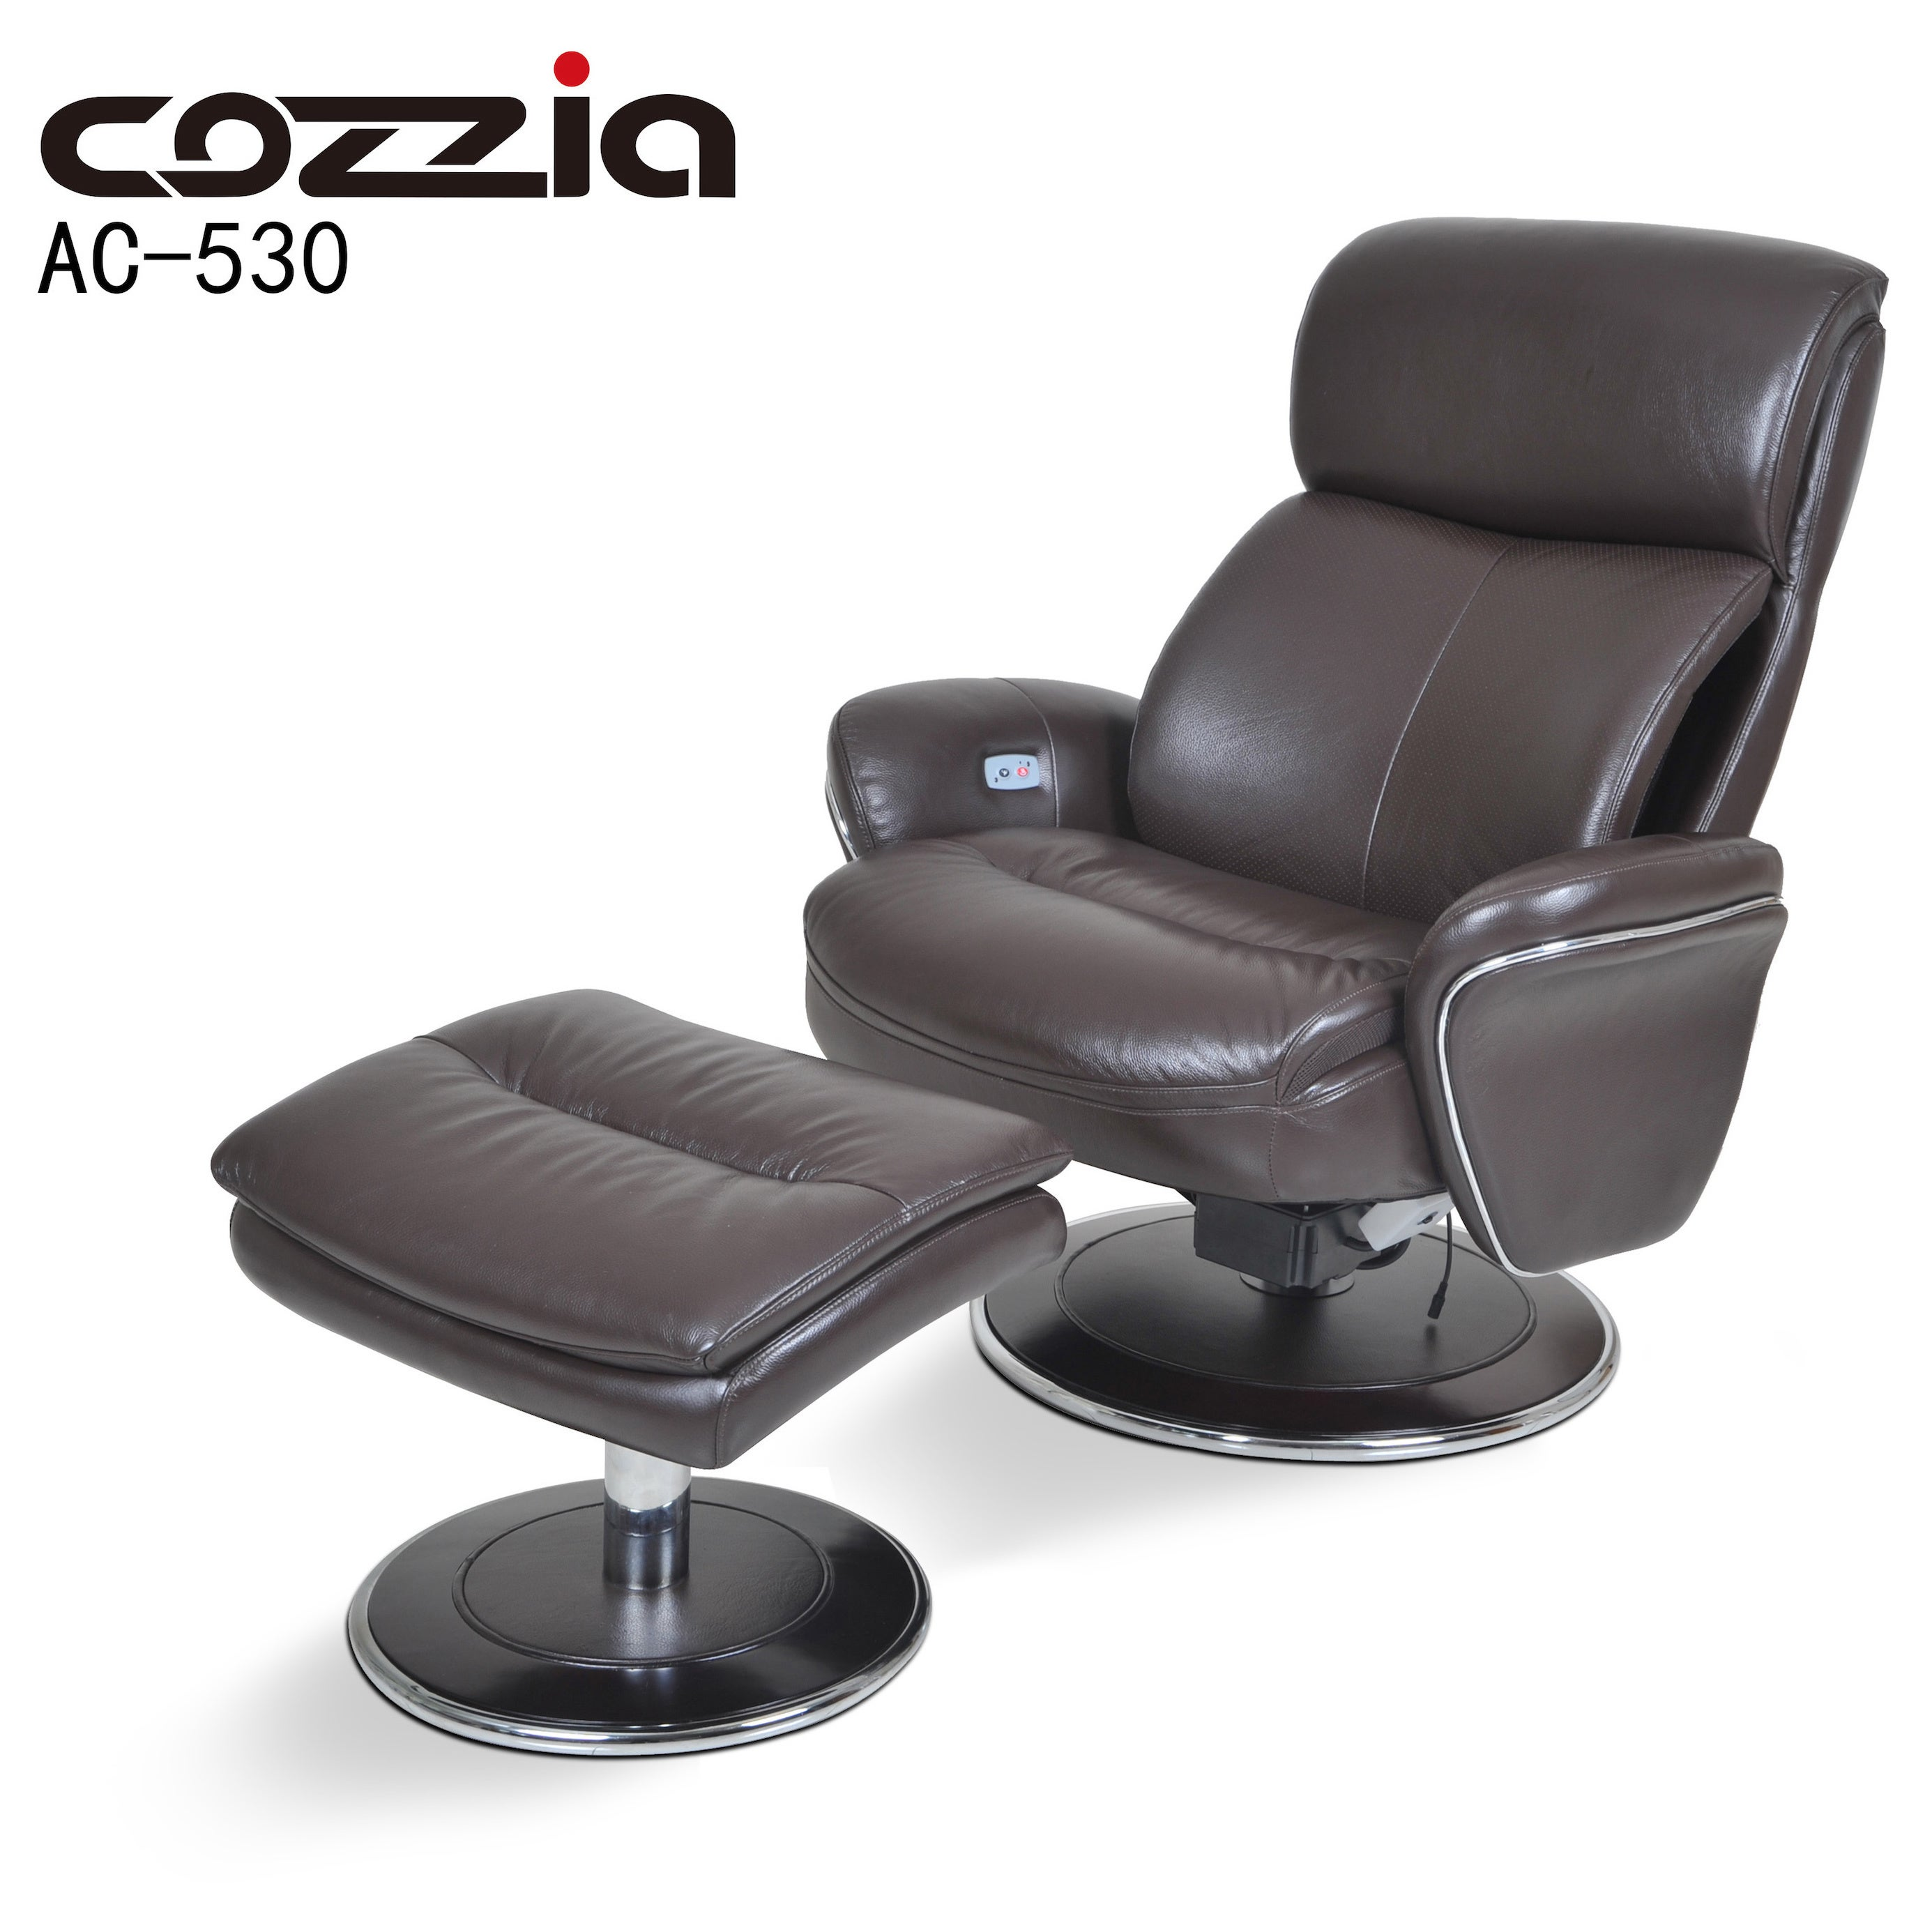 Shop Cozzia Black/Brown Leather Ergonomic Chair and Ottoman - Free Shipping Today - Overstock.com - 11936641  sc 1 st  Overstock.com & Shop Cozzia Black/Brown Leather Ergonomic Chair and Ottoman - Free ...